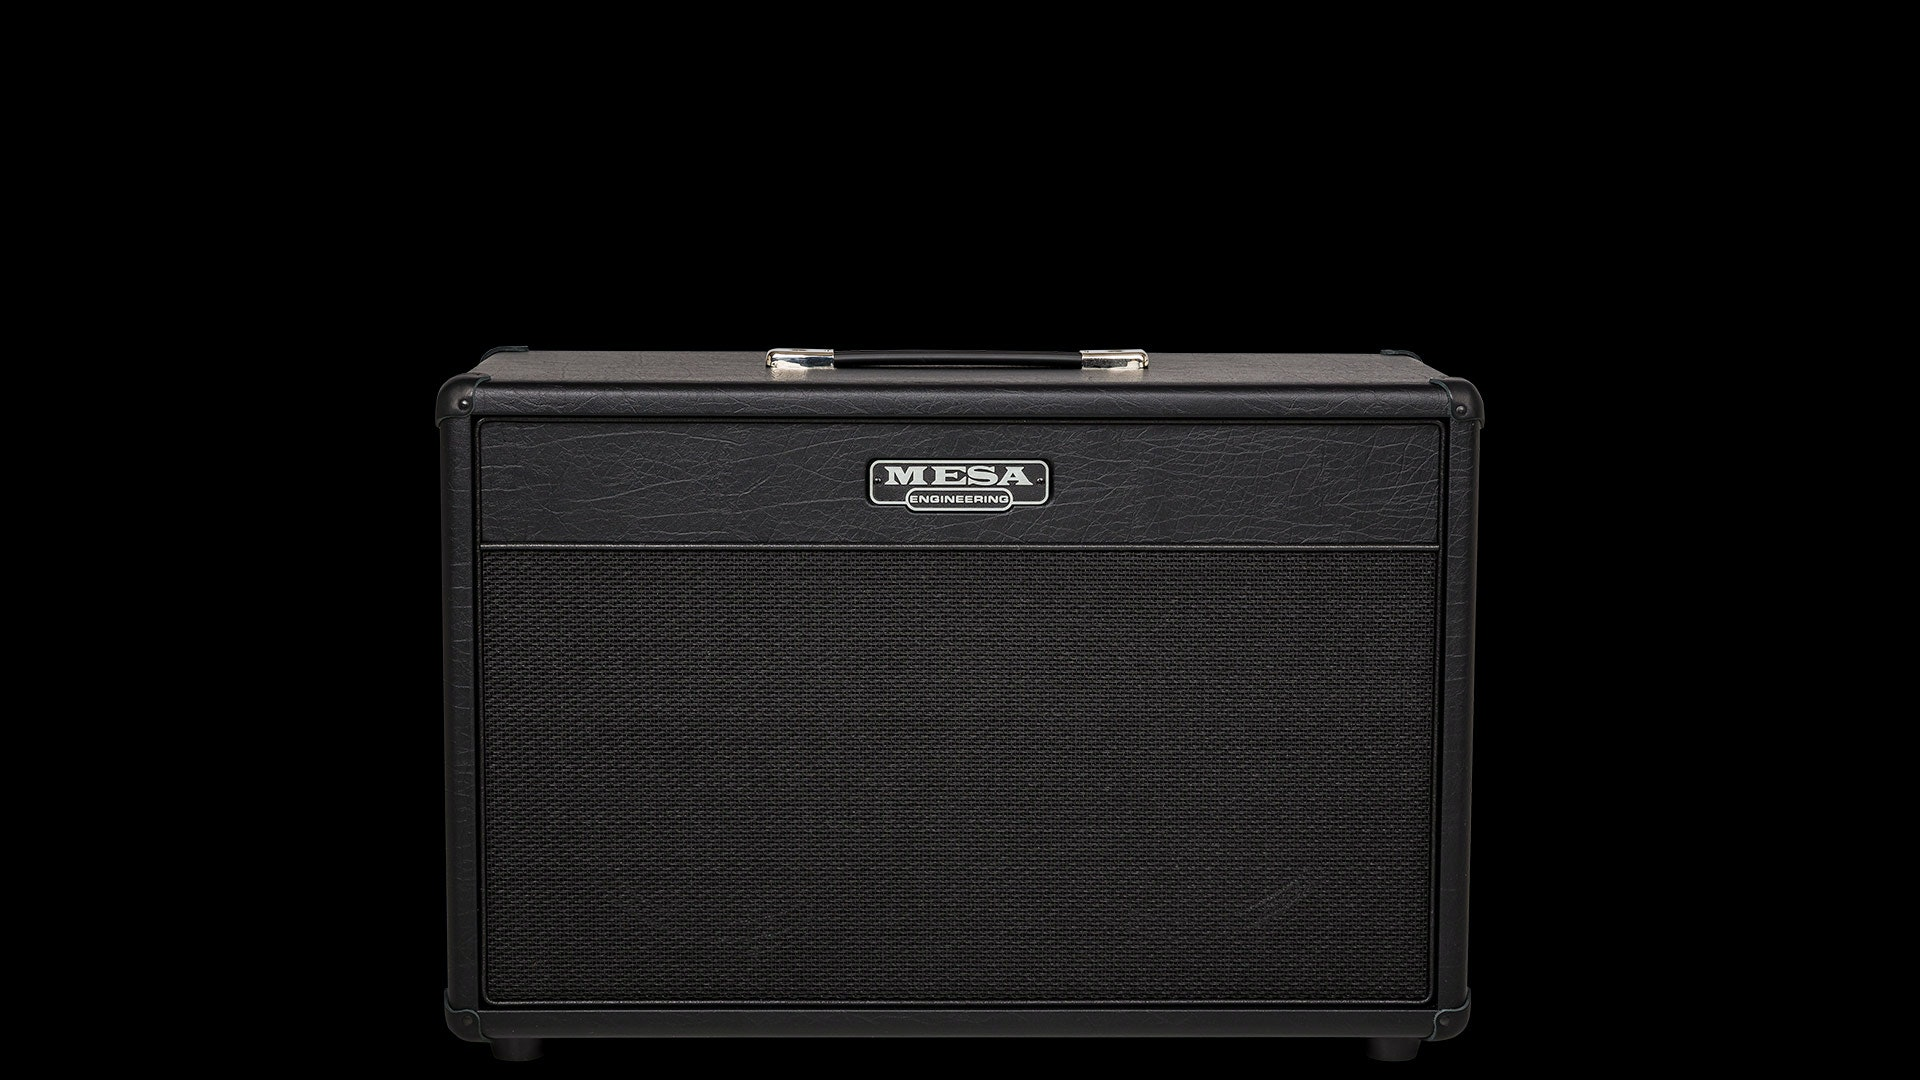 2x12 Lone Star Guitar Amplifier Cabinet Mesa Boogie Wiring 1x12 Cabinets